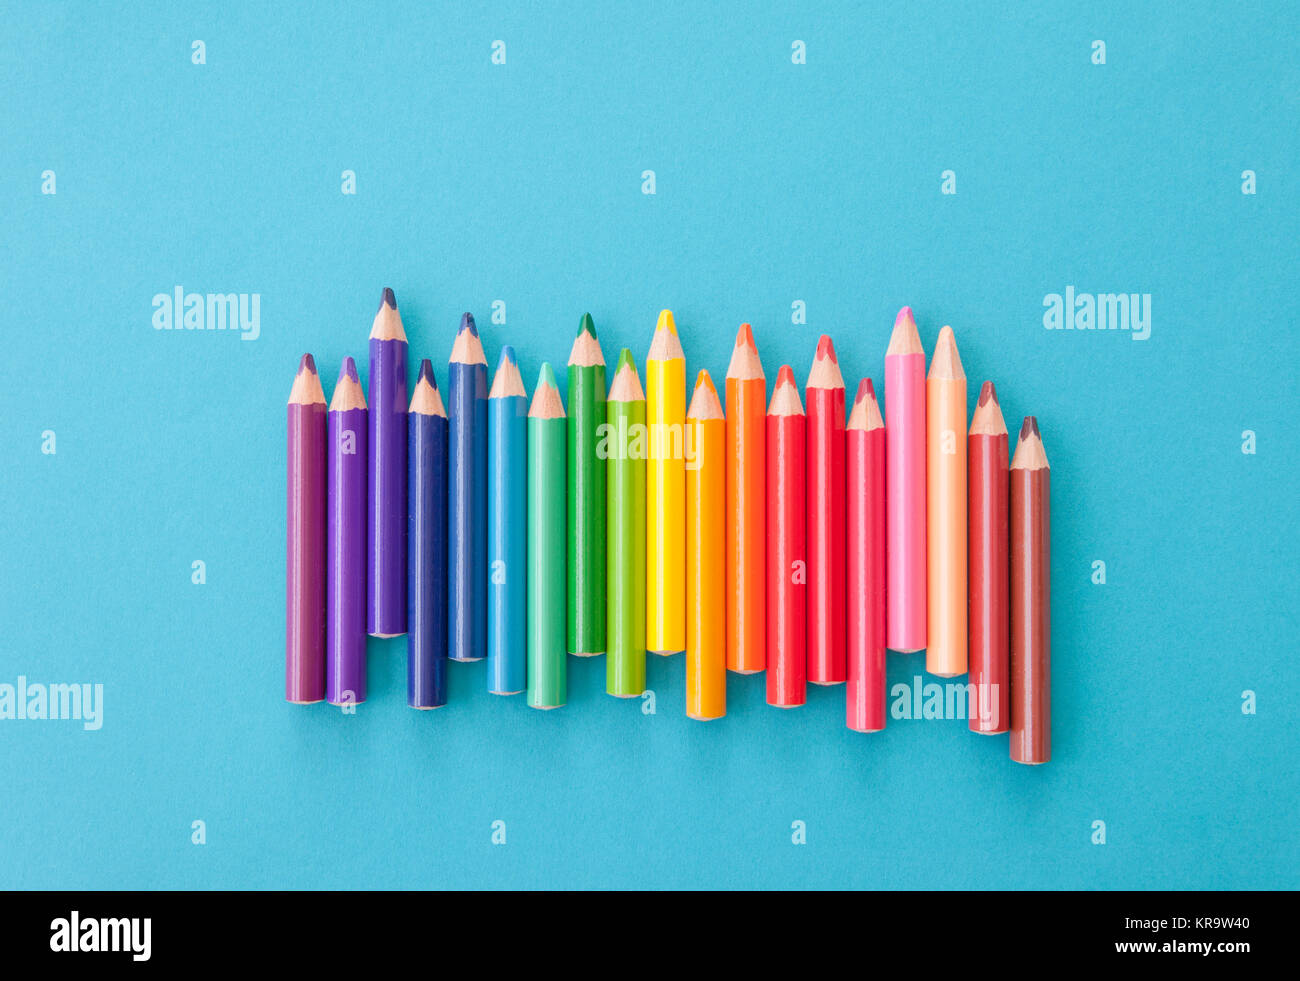 colorful pencils on blue - Stock Image